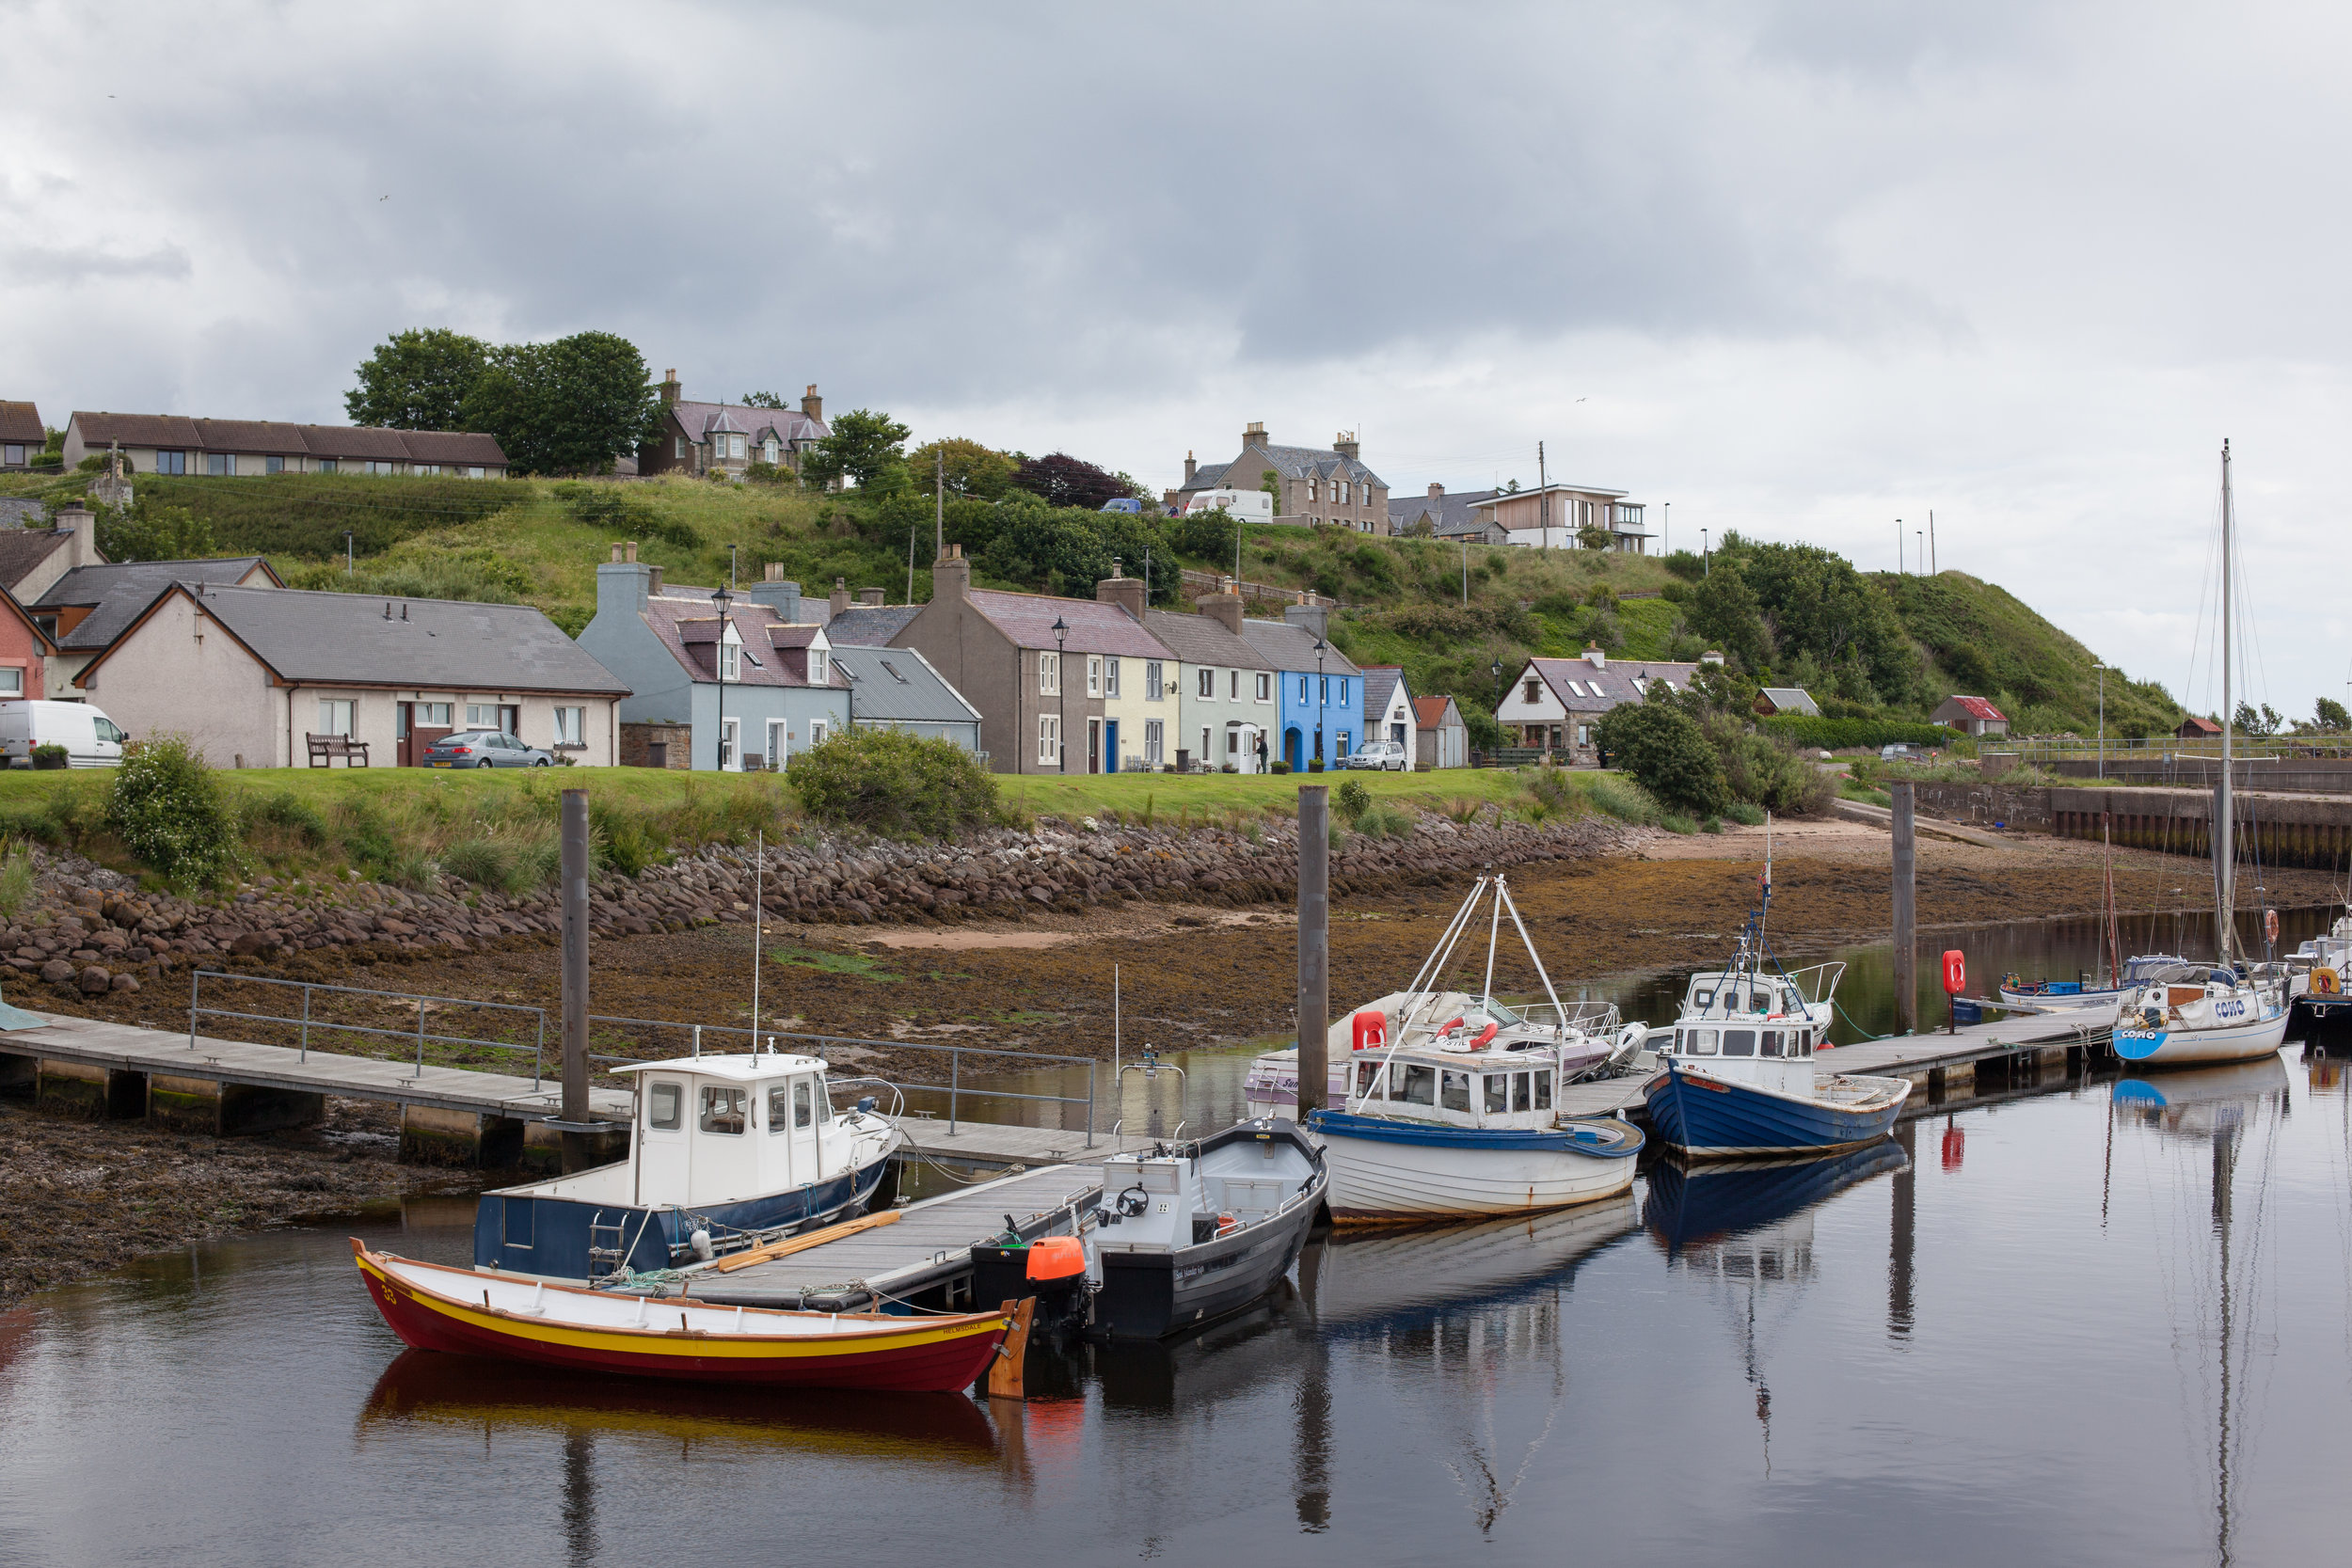 Boats in a river along the coast of Great Britain.